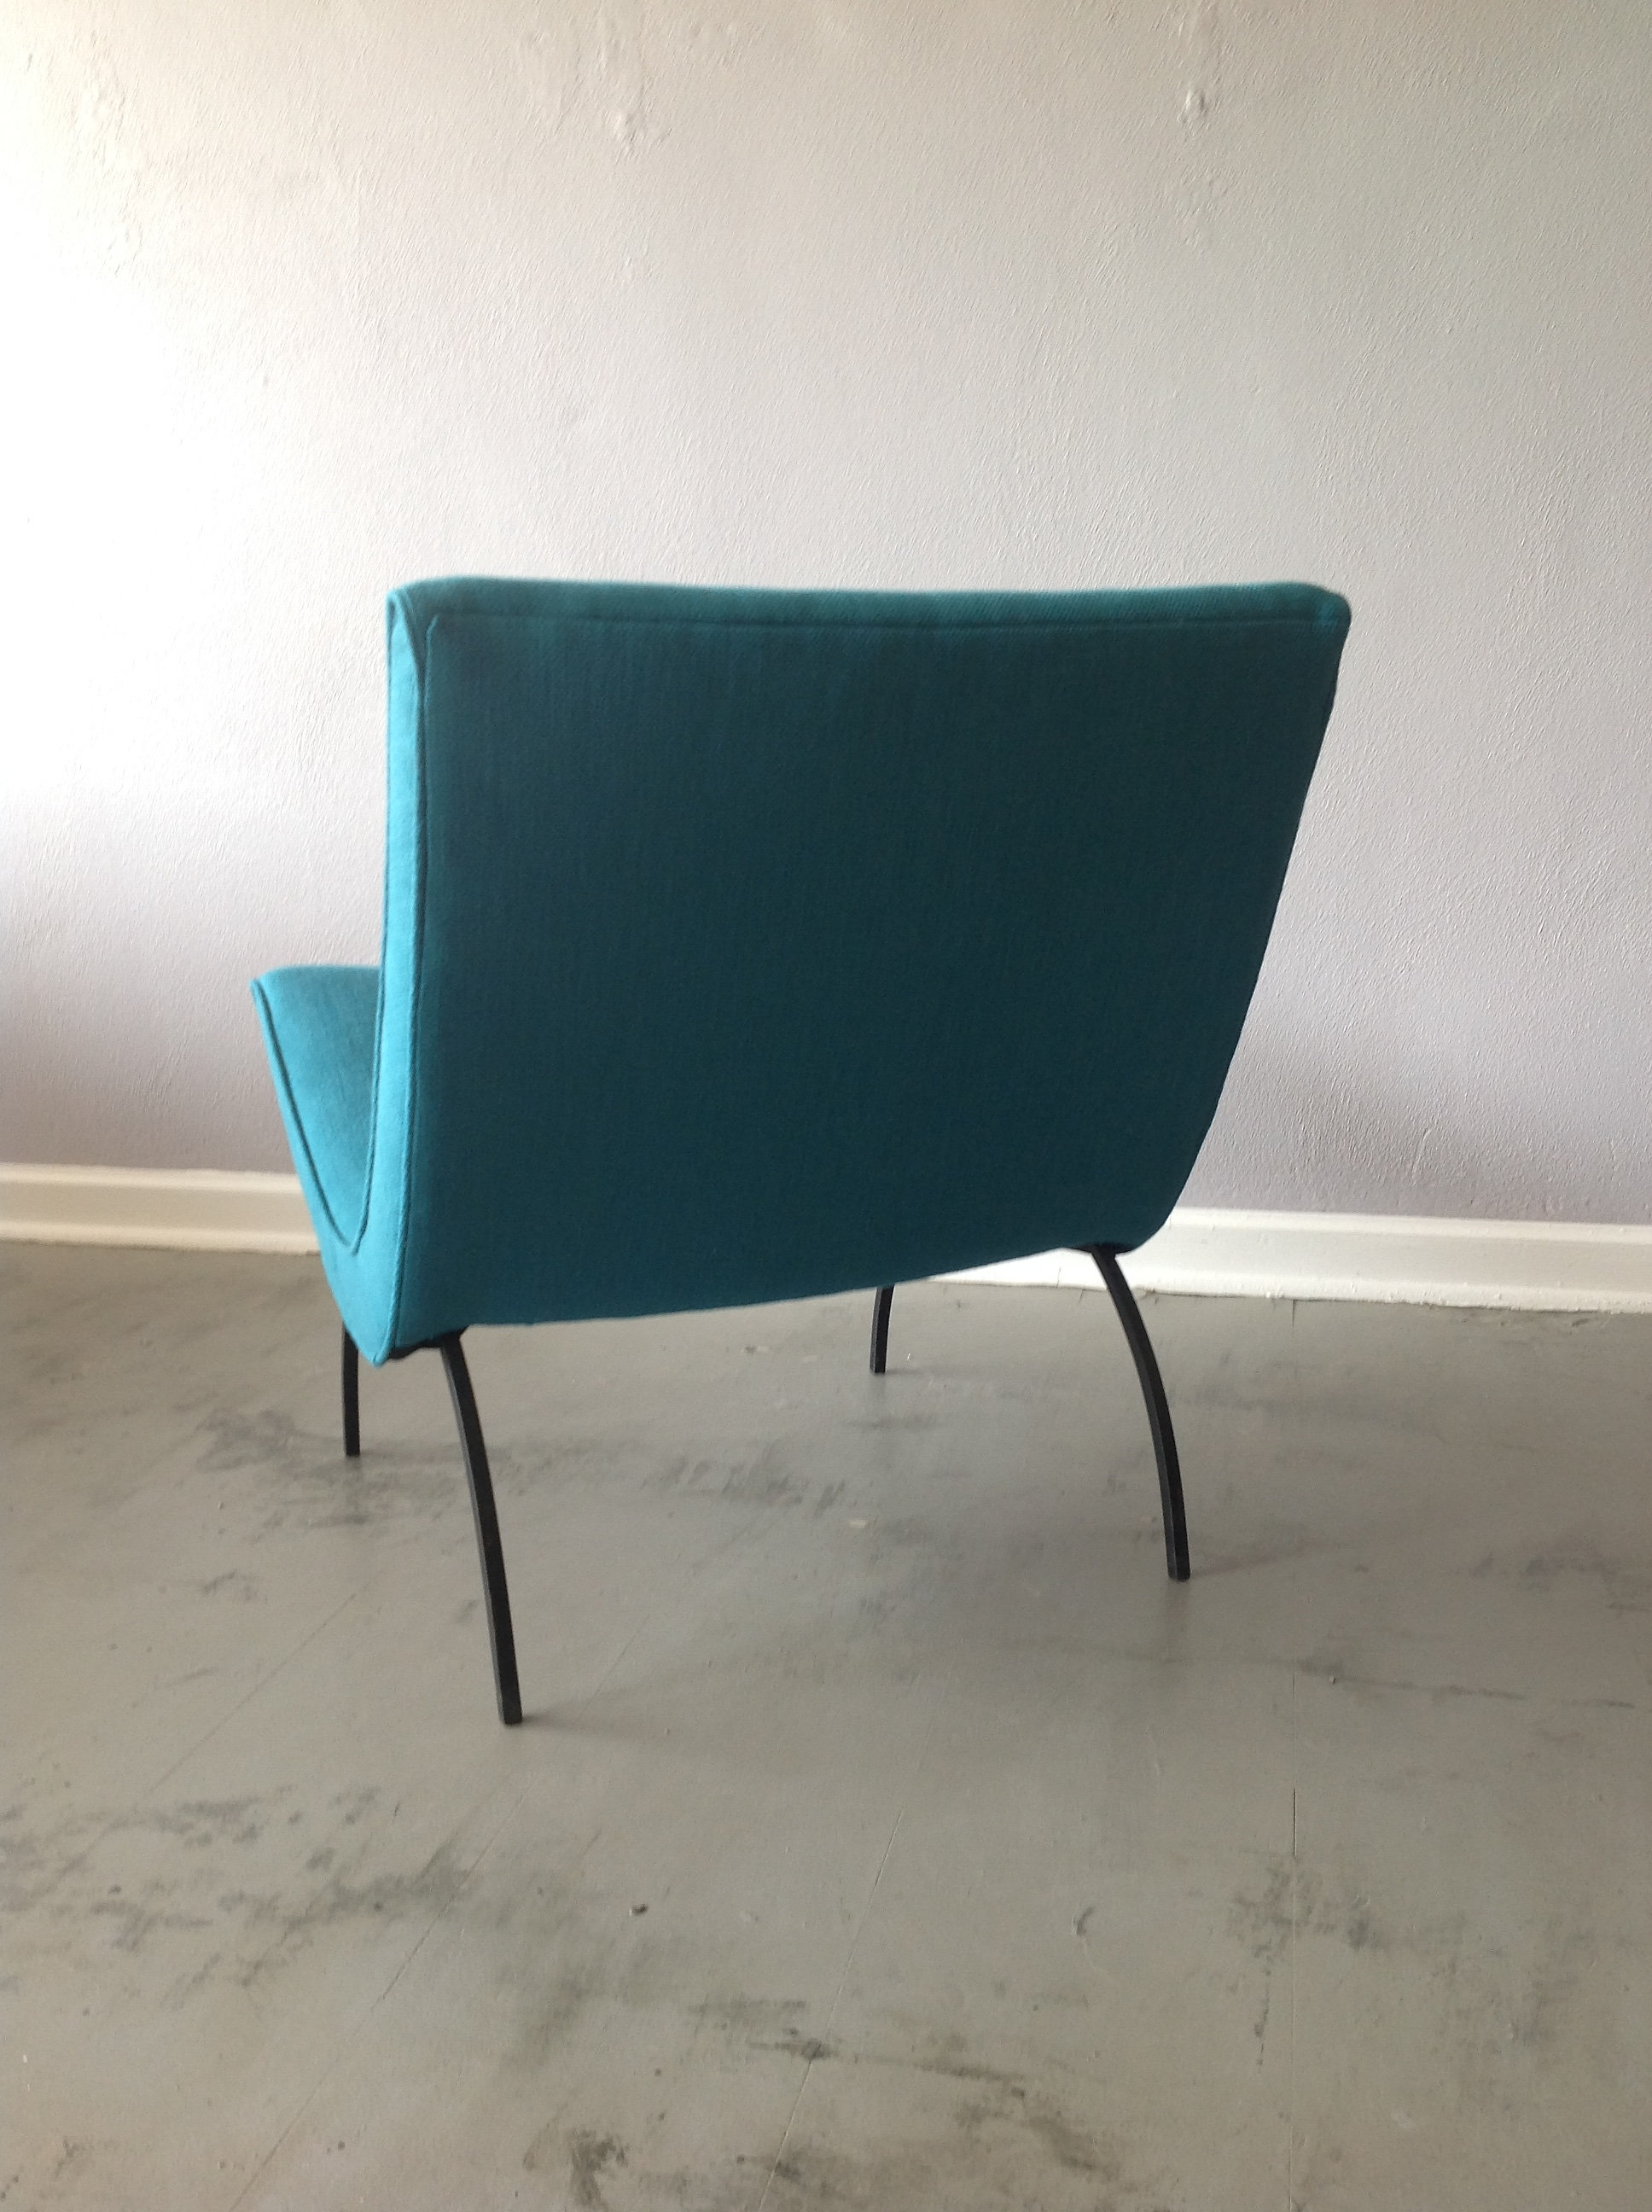 This Great Low Milo Baughman Scoop Chair On Iron Legs, Has The Look. Teal  Upholstery Is New And Really Makes This Chair A Statement Piece.